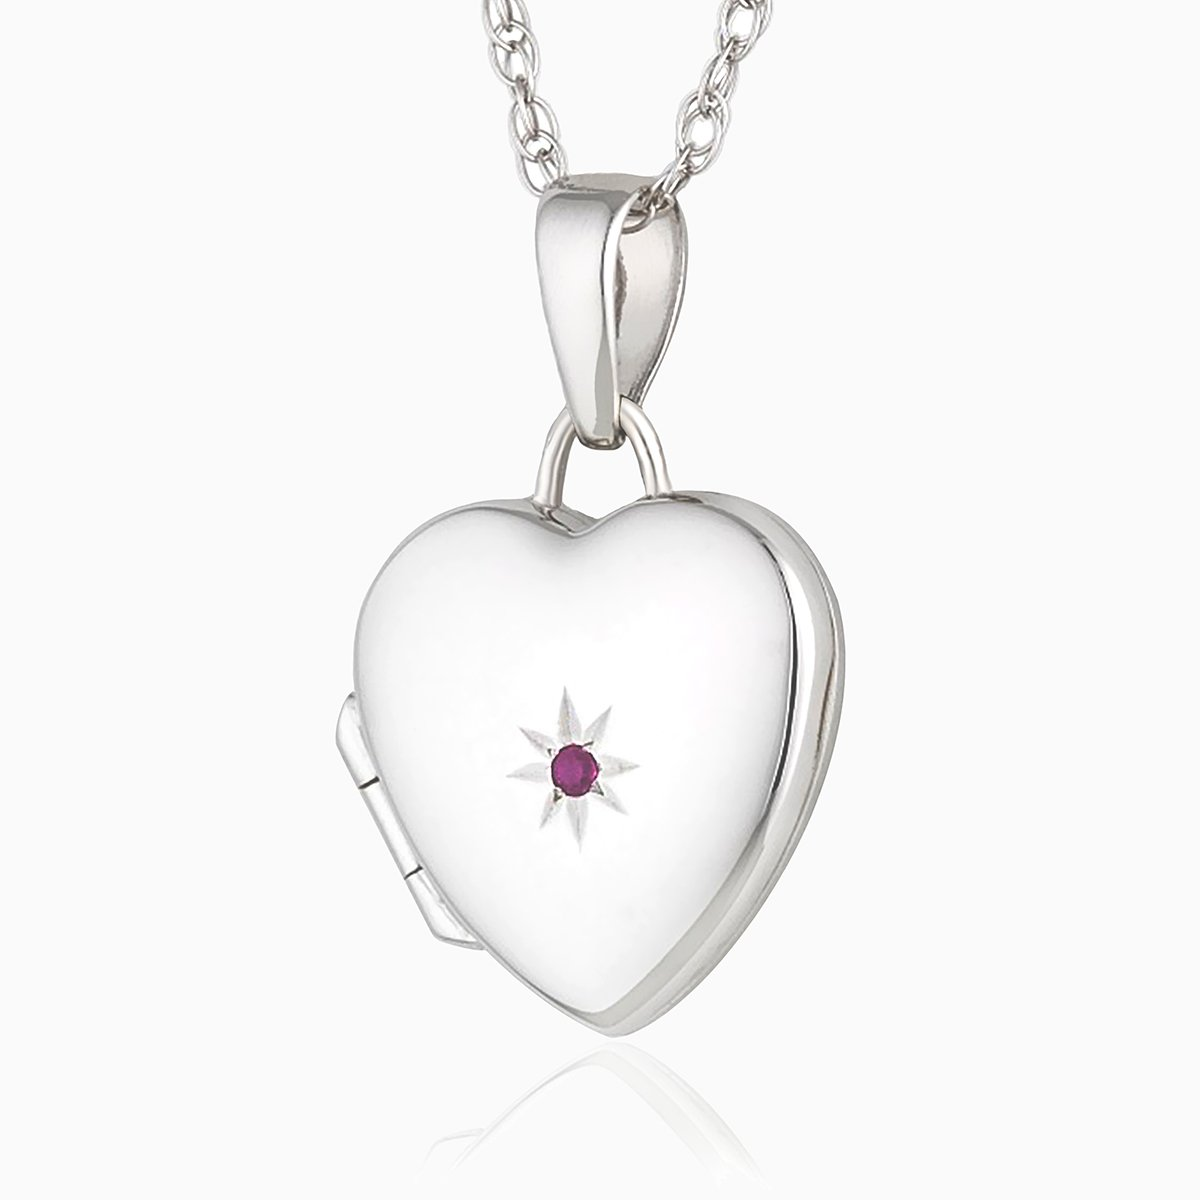 Product title: Petite White Gold and Ruby Locket, product type: Locket